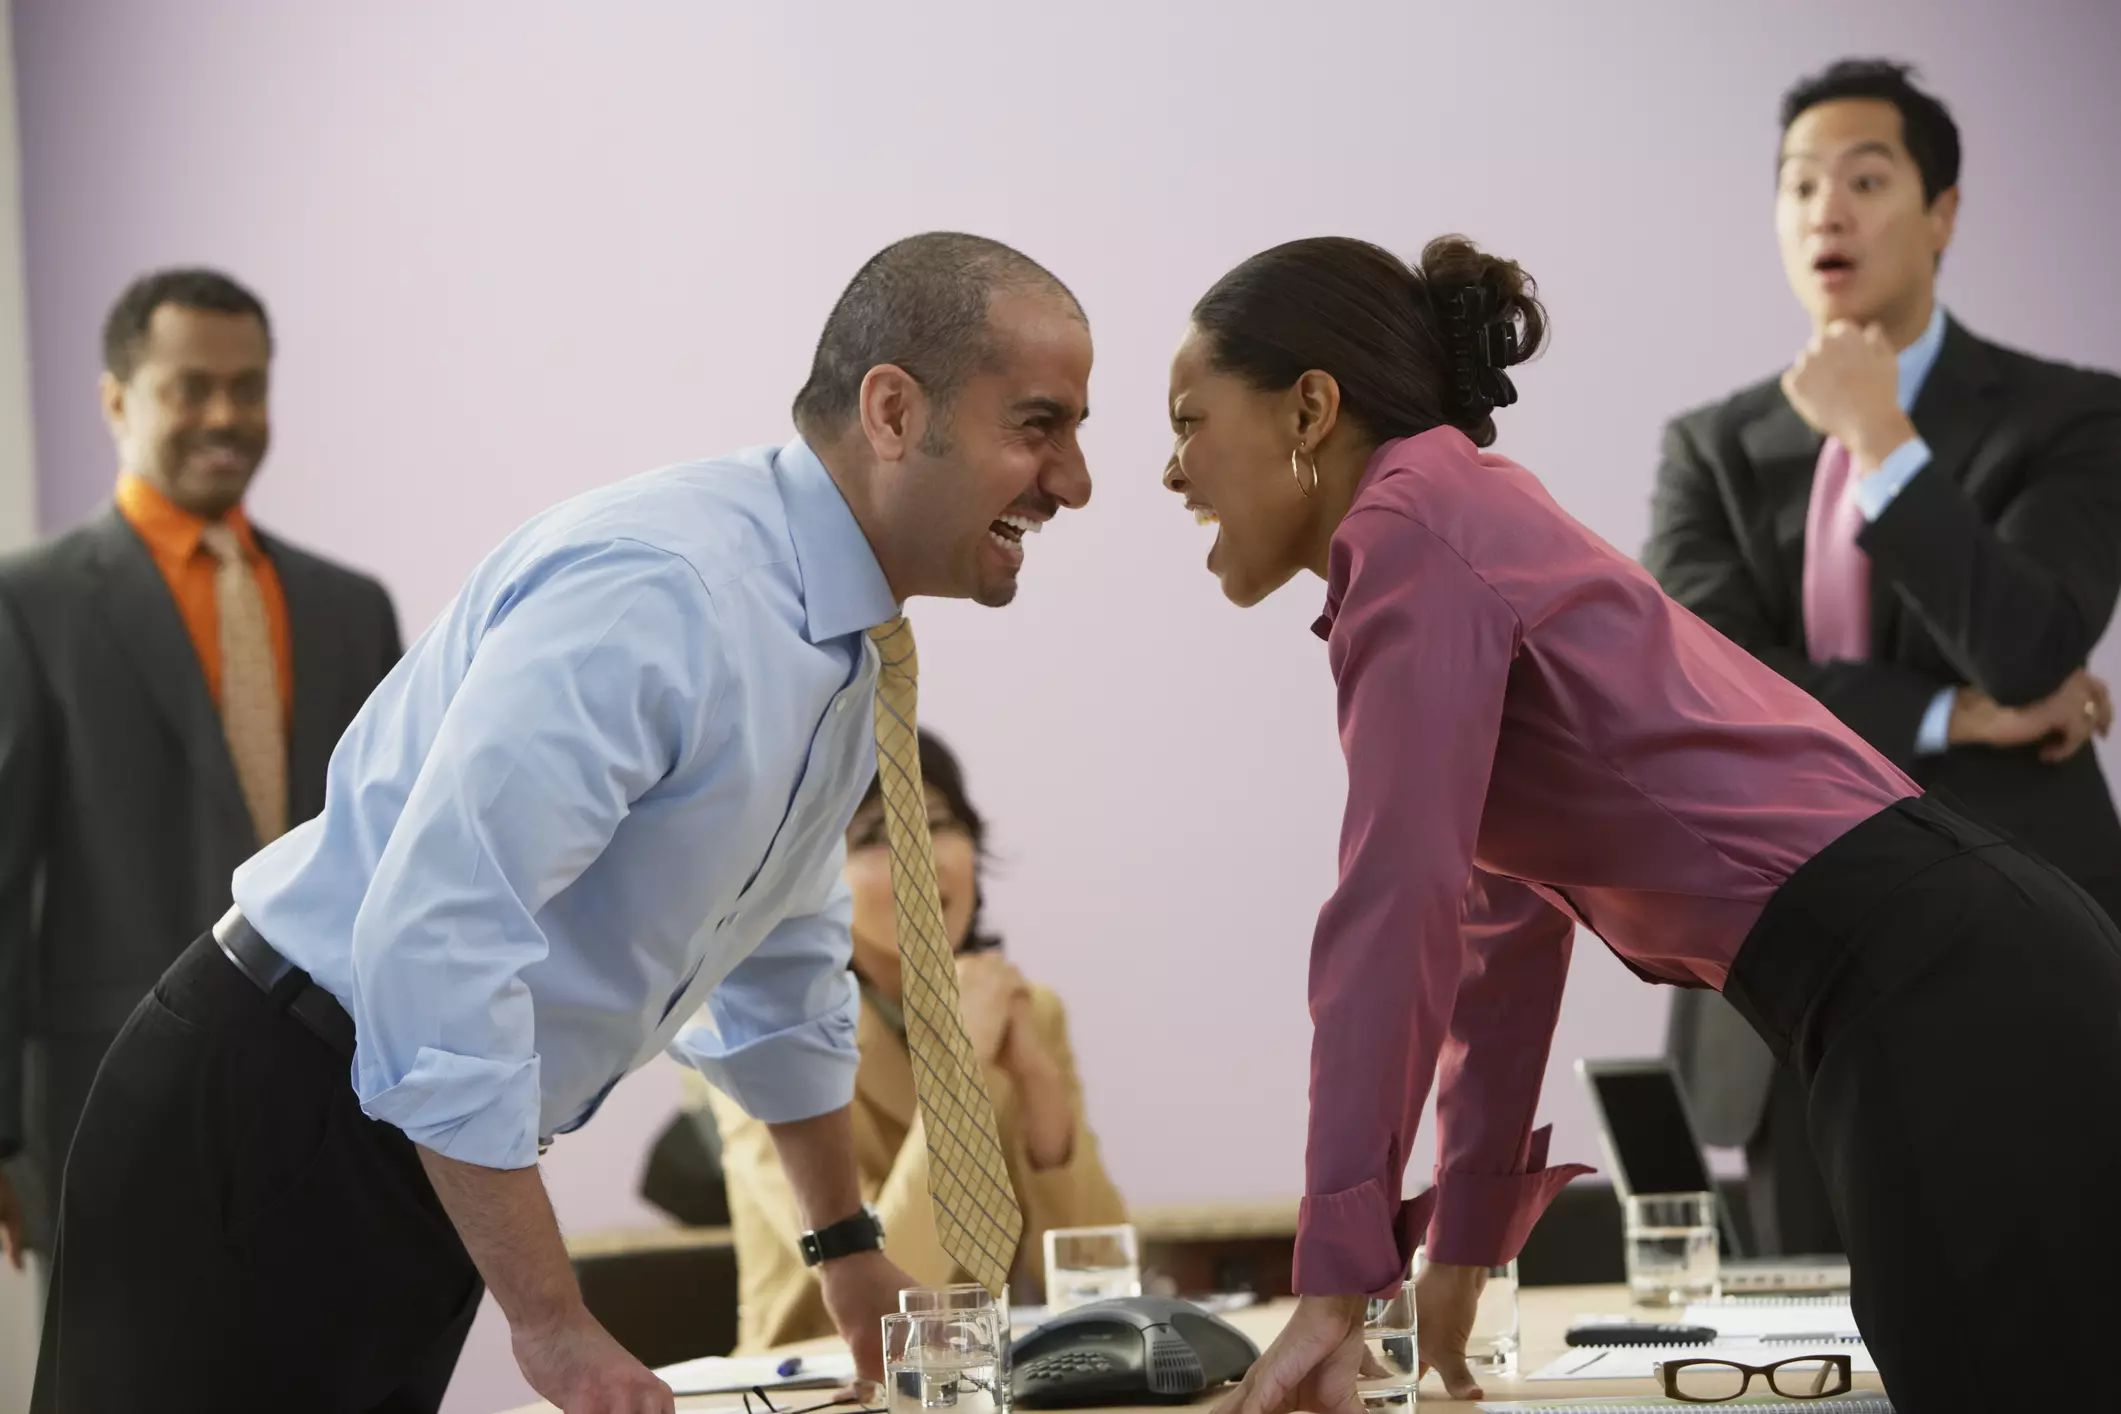 You Can Hire Professional Quarrelers To Argue On Your Behalf